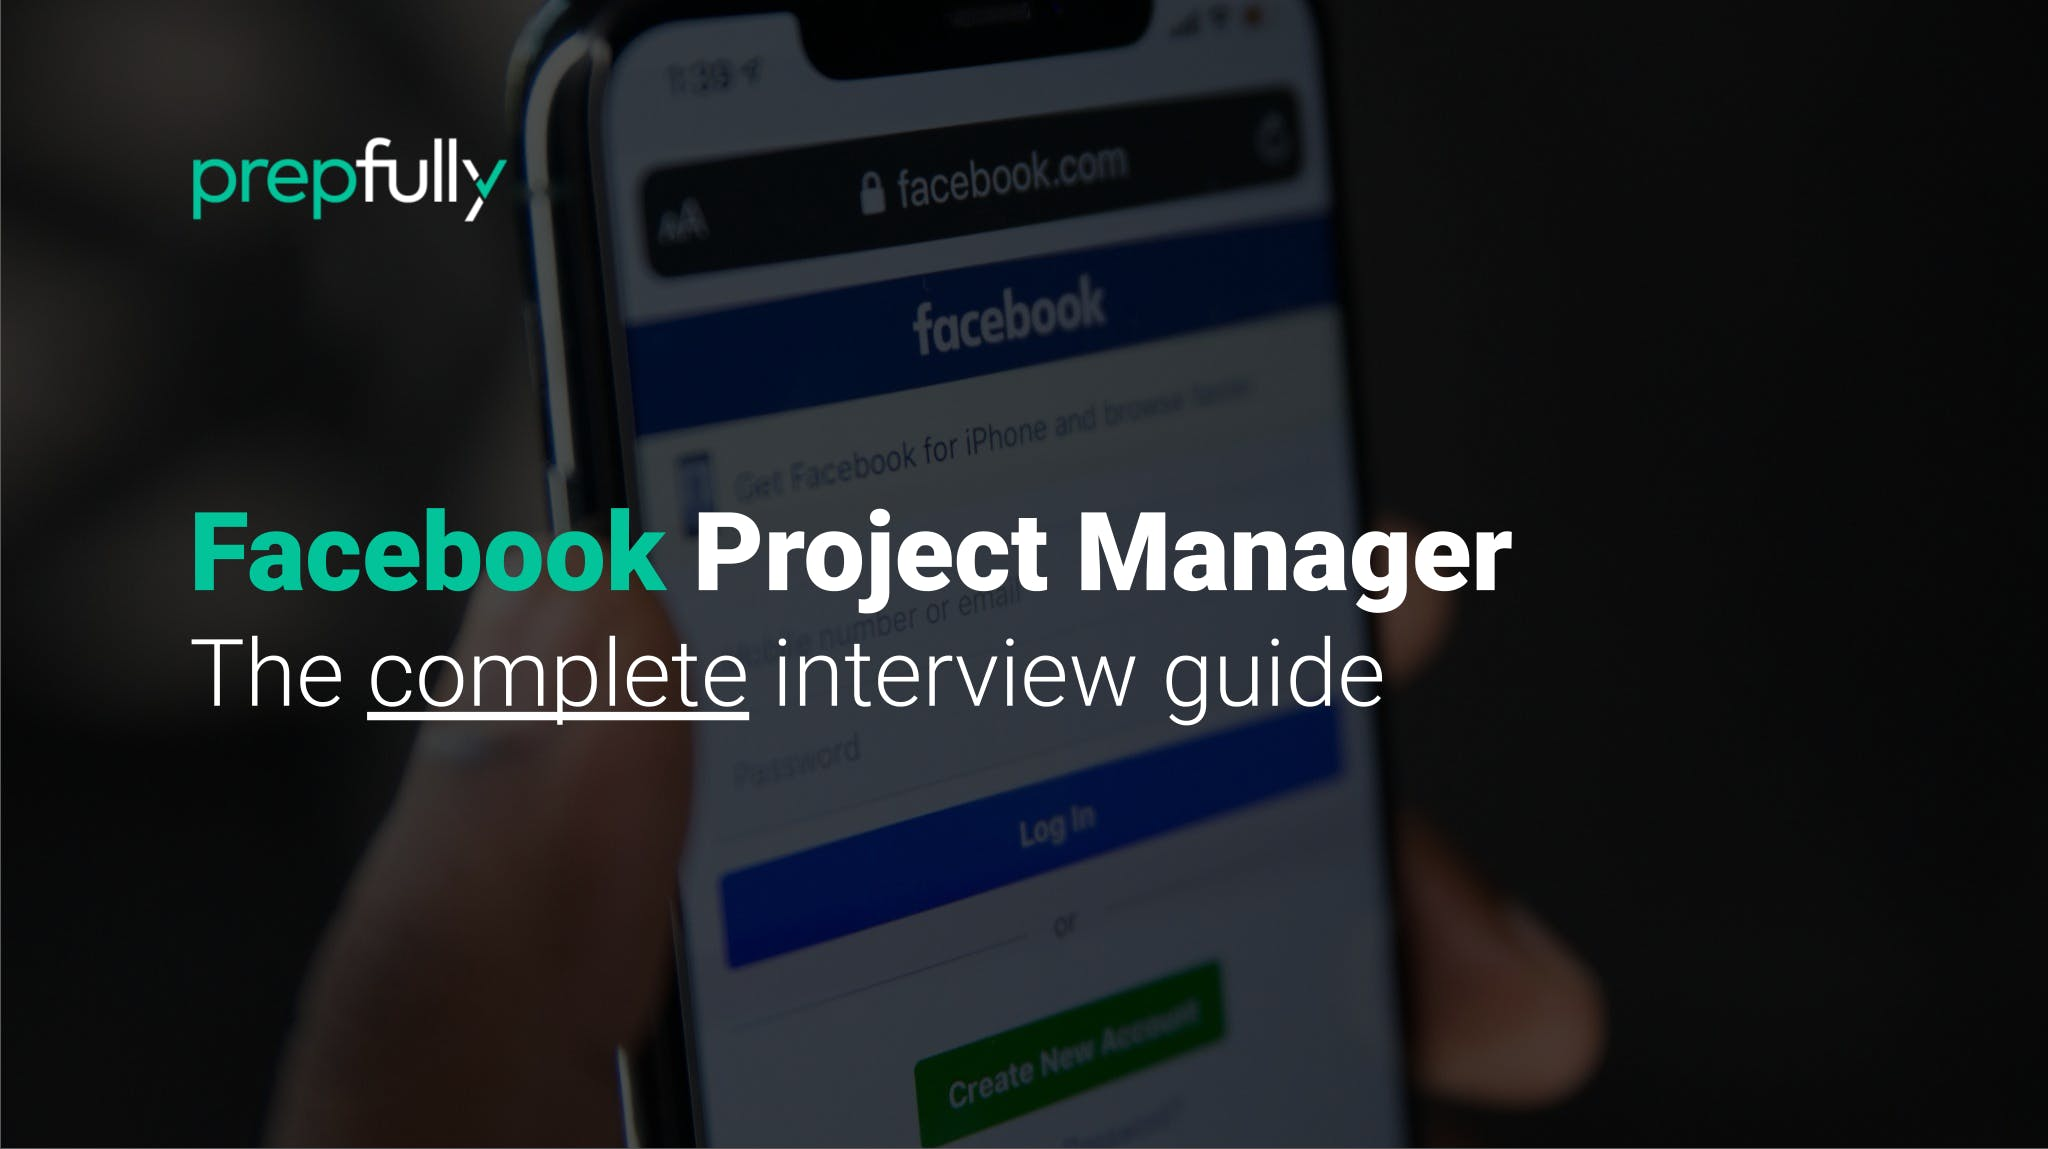 Interview guide for Facebook Project Manager